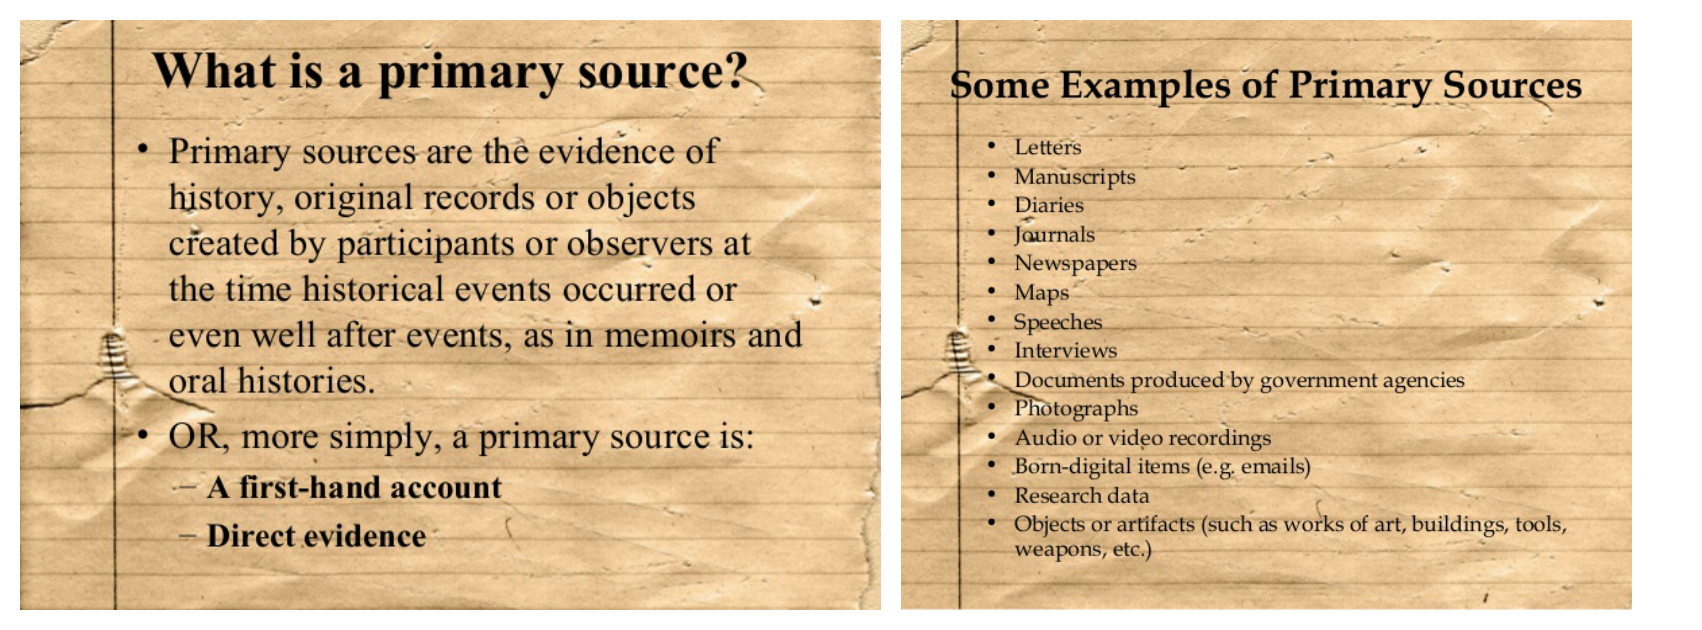 Primary Sources US History Term Paper Subject Guides At The